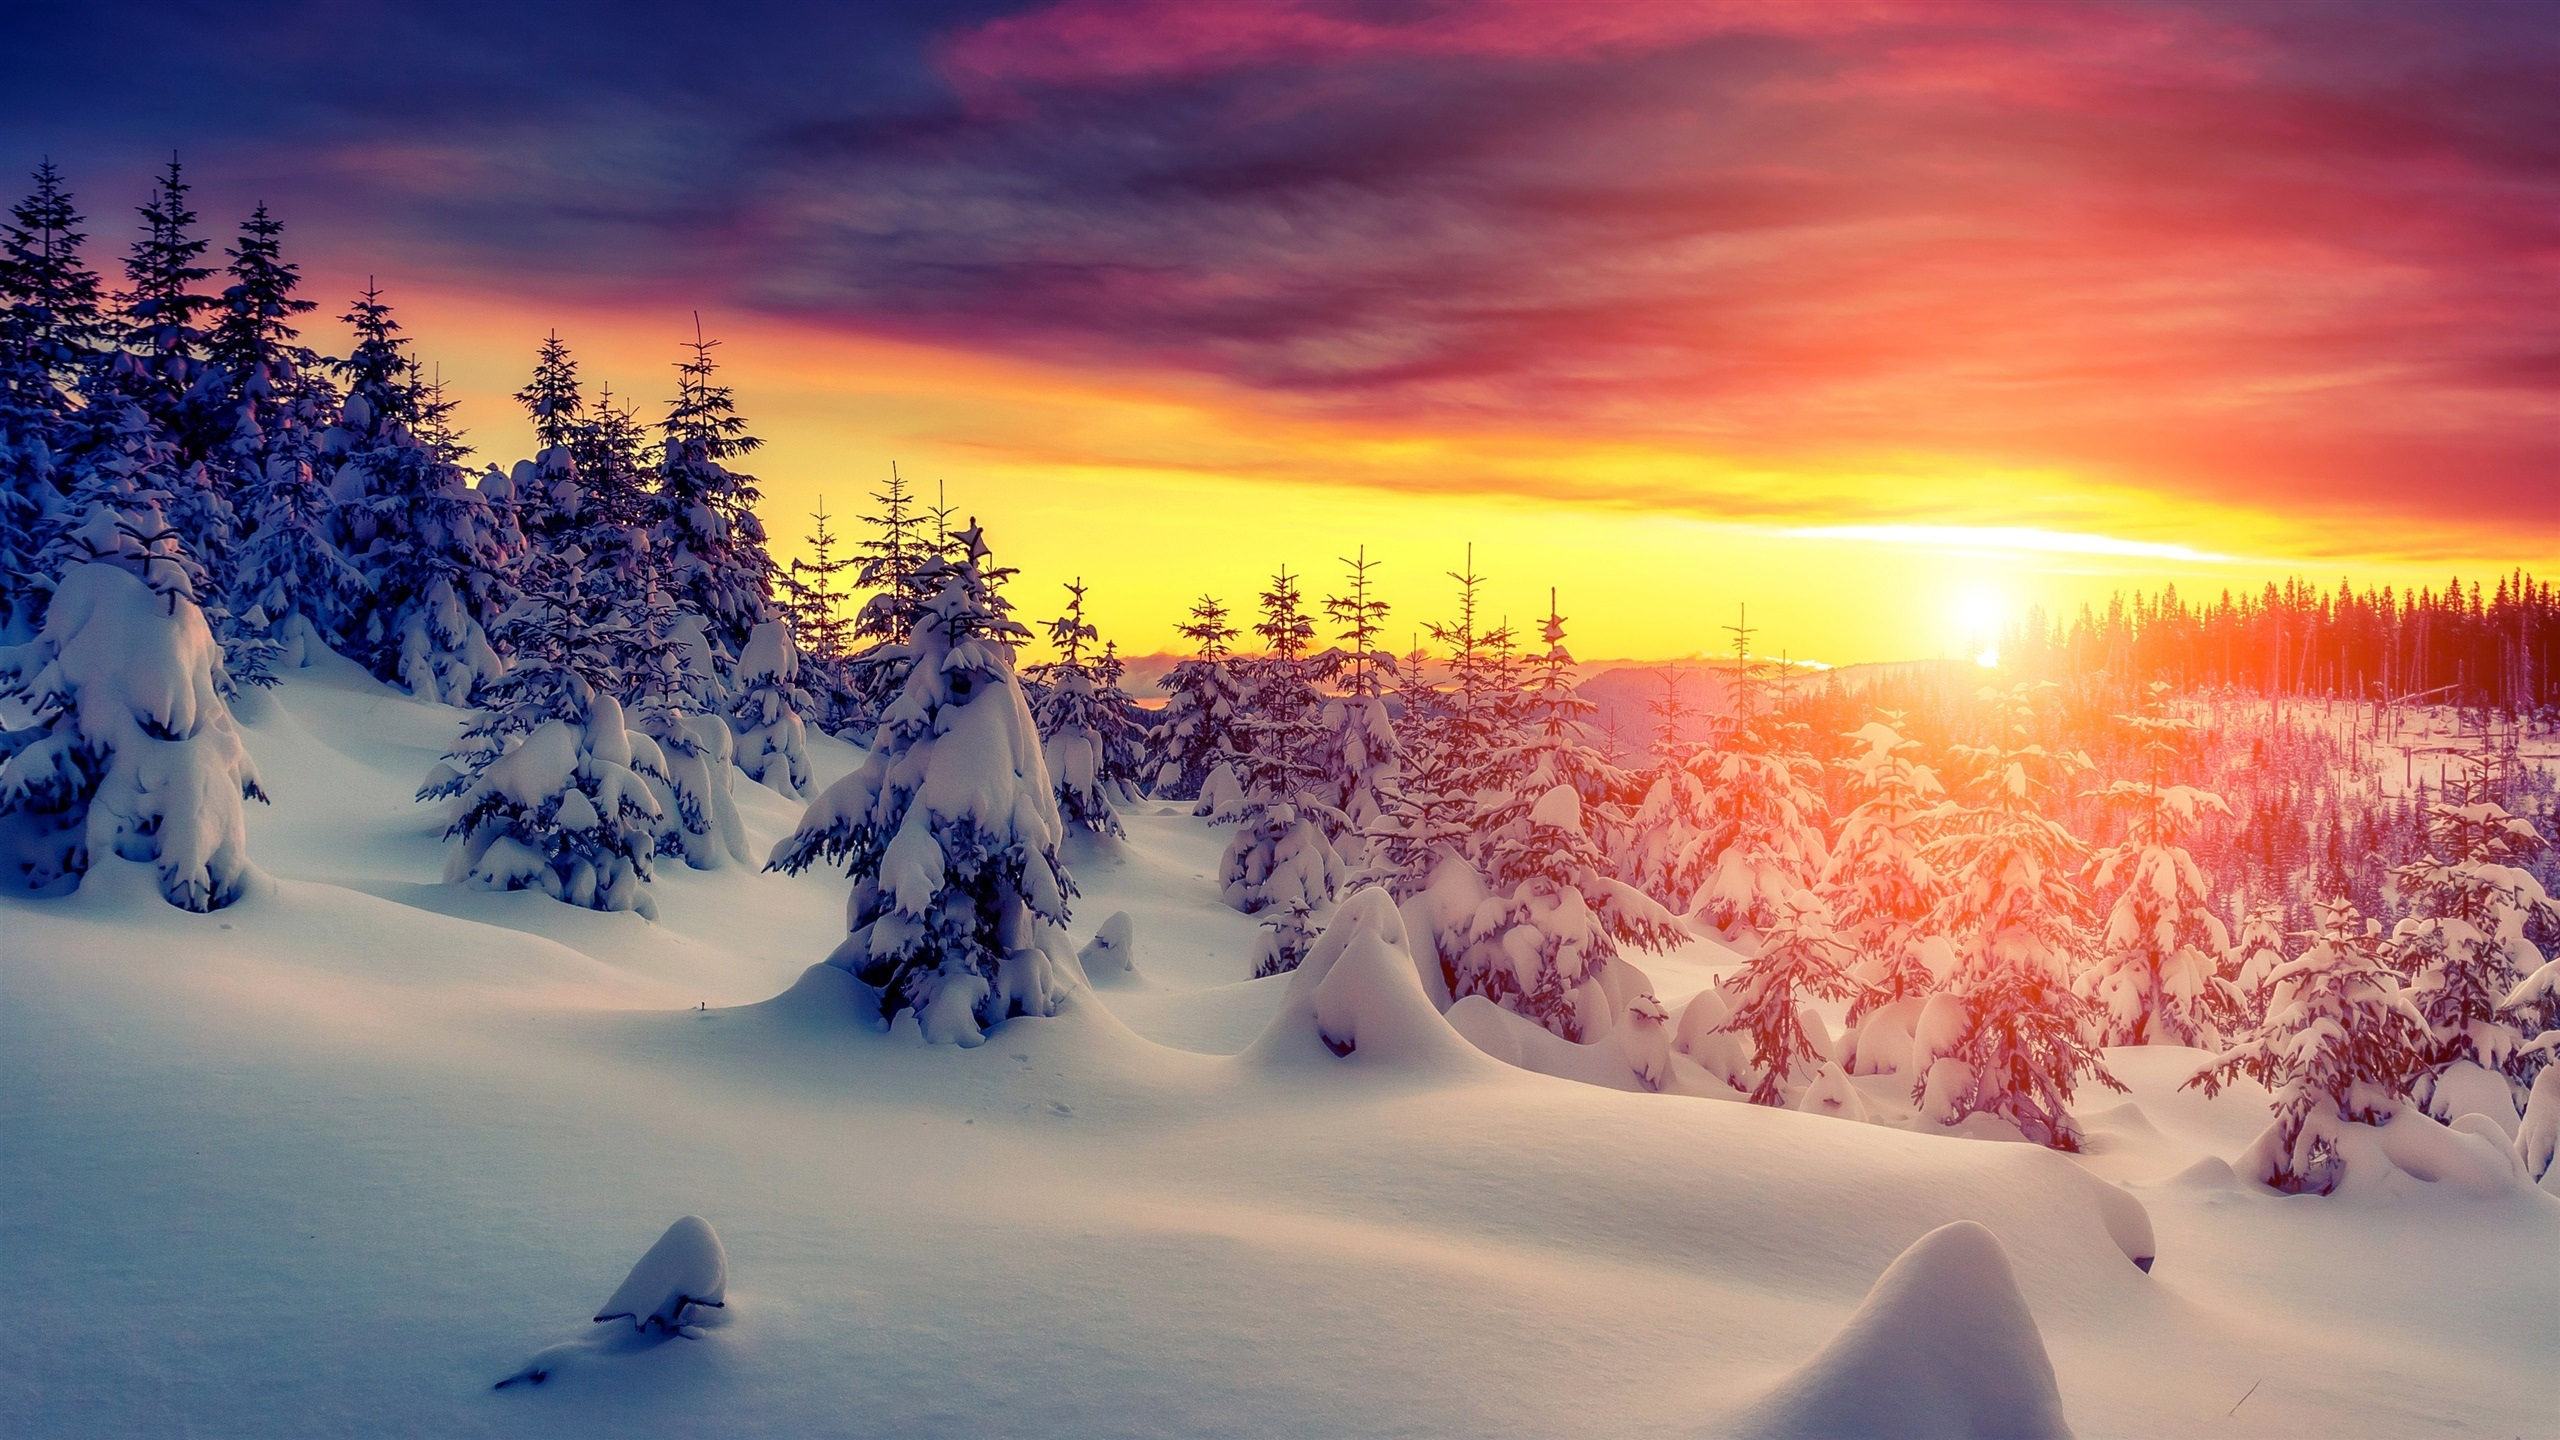 Wallpaper Sunset Winter Thick Snow Trees 2560x1440 Qhd Picture Image